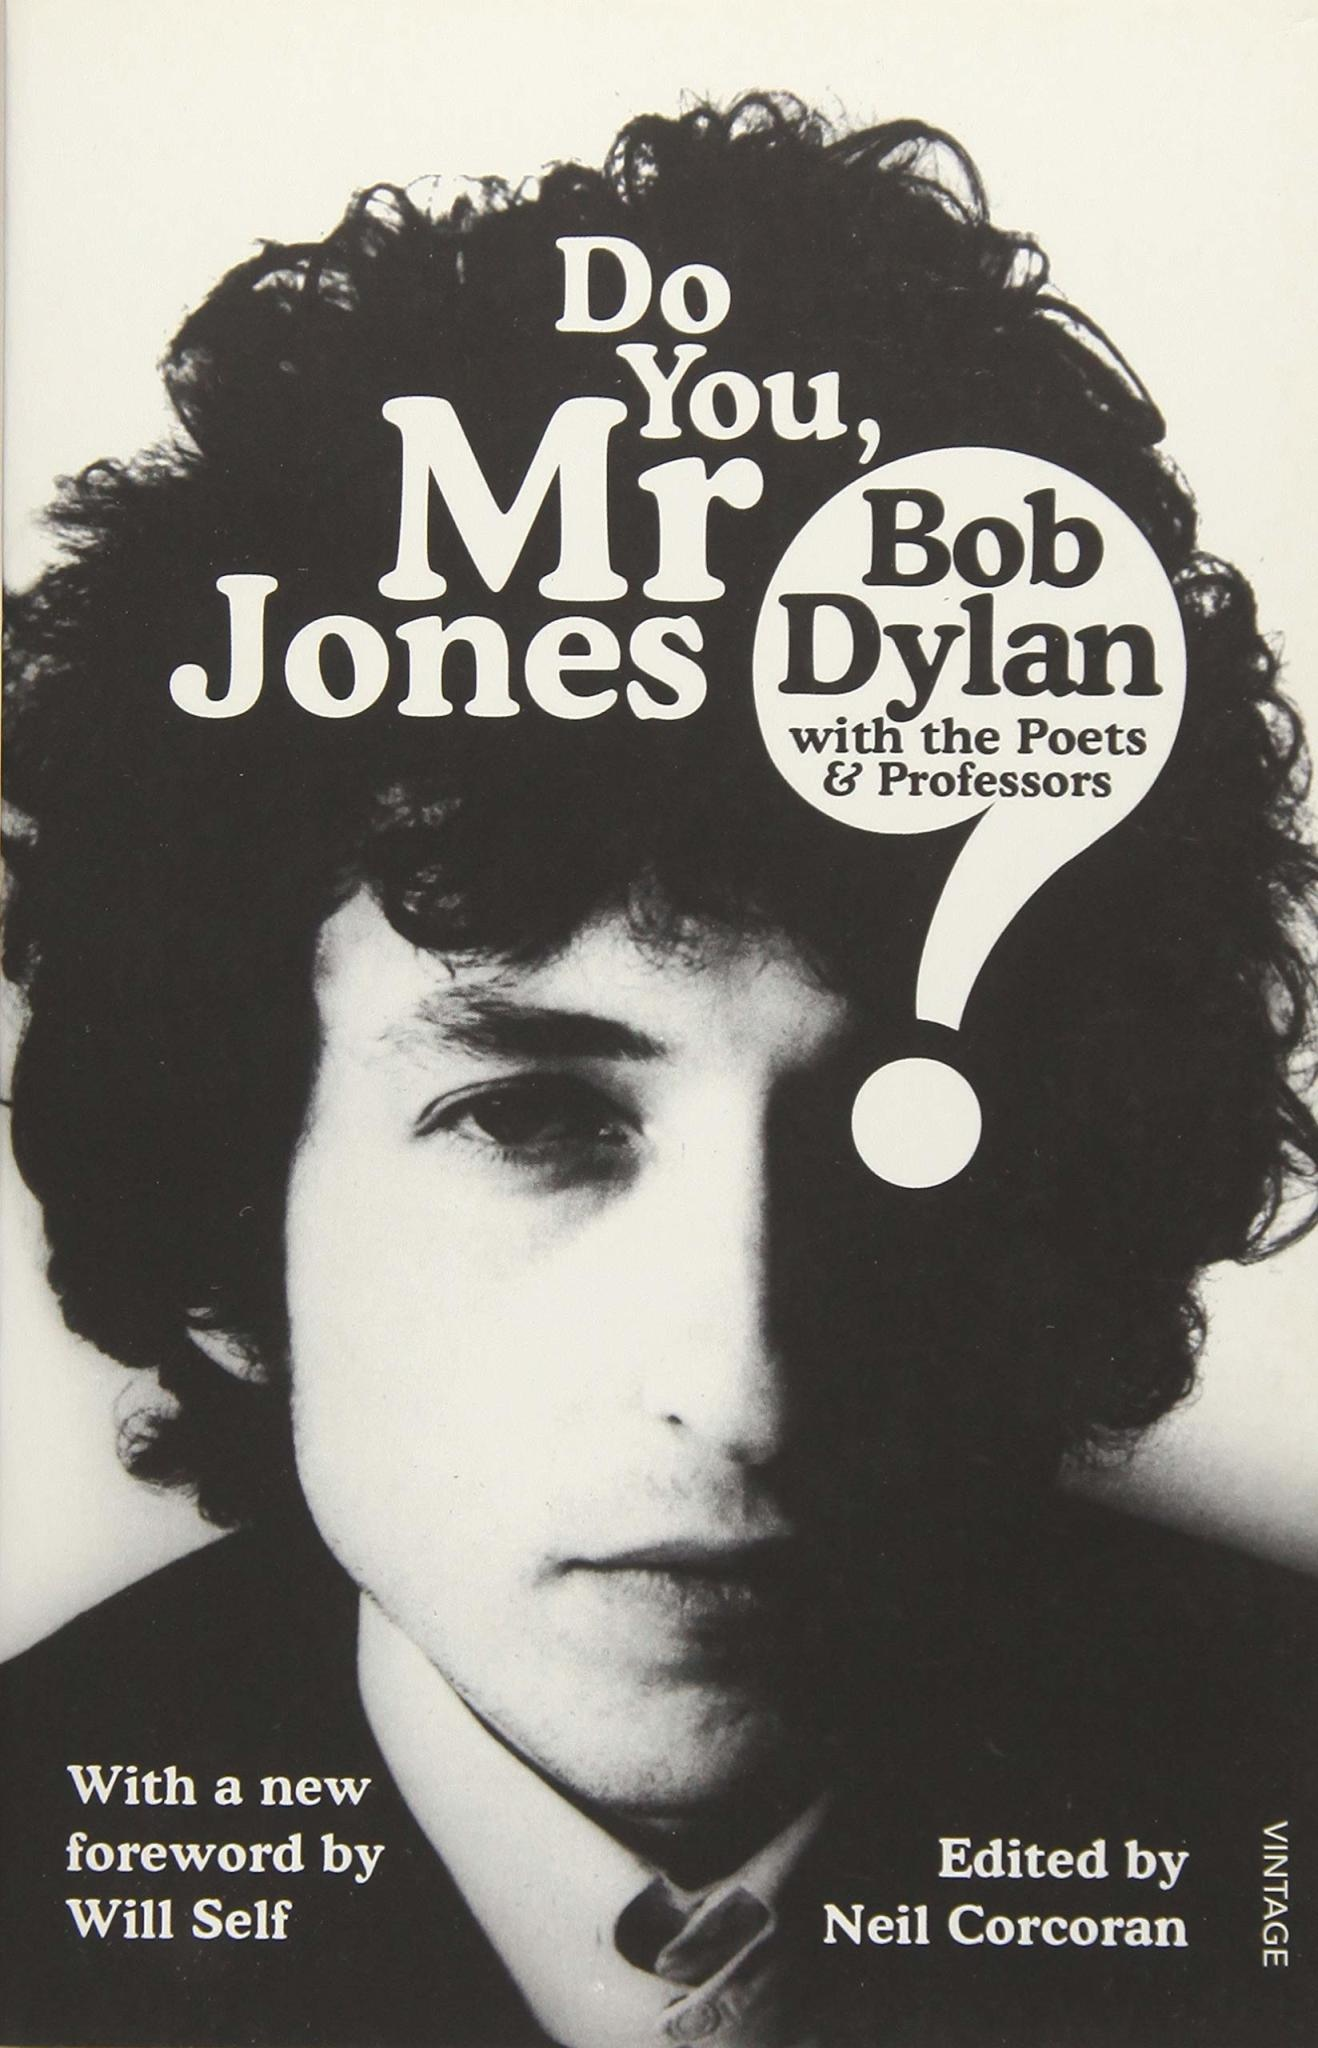 Biographies & Memoirs Do You Mr Jones: Bob Dylan With The Poets & Professors - Neil Corcoran (Ed).